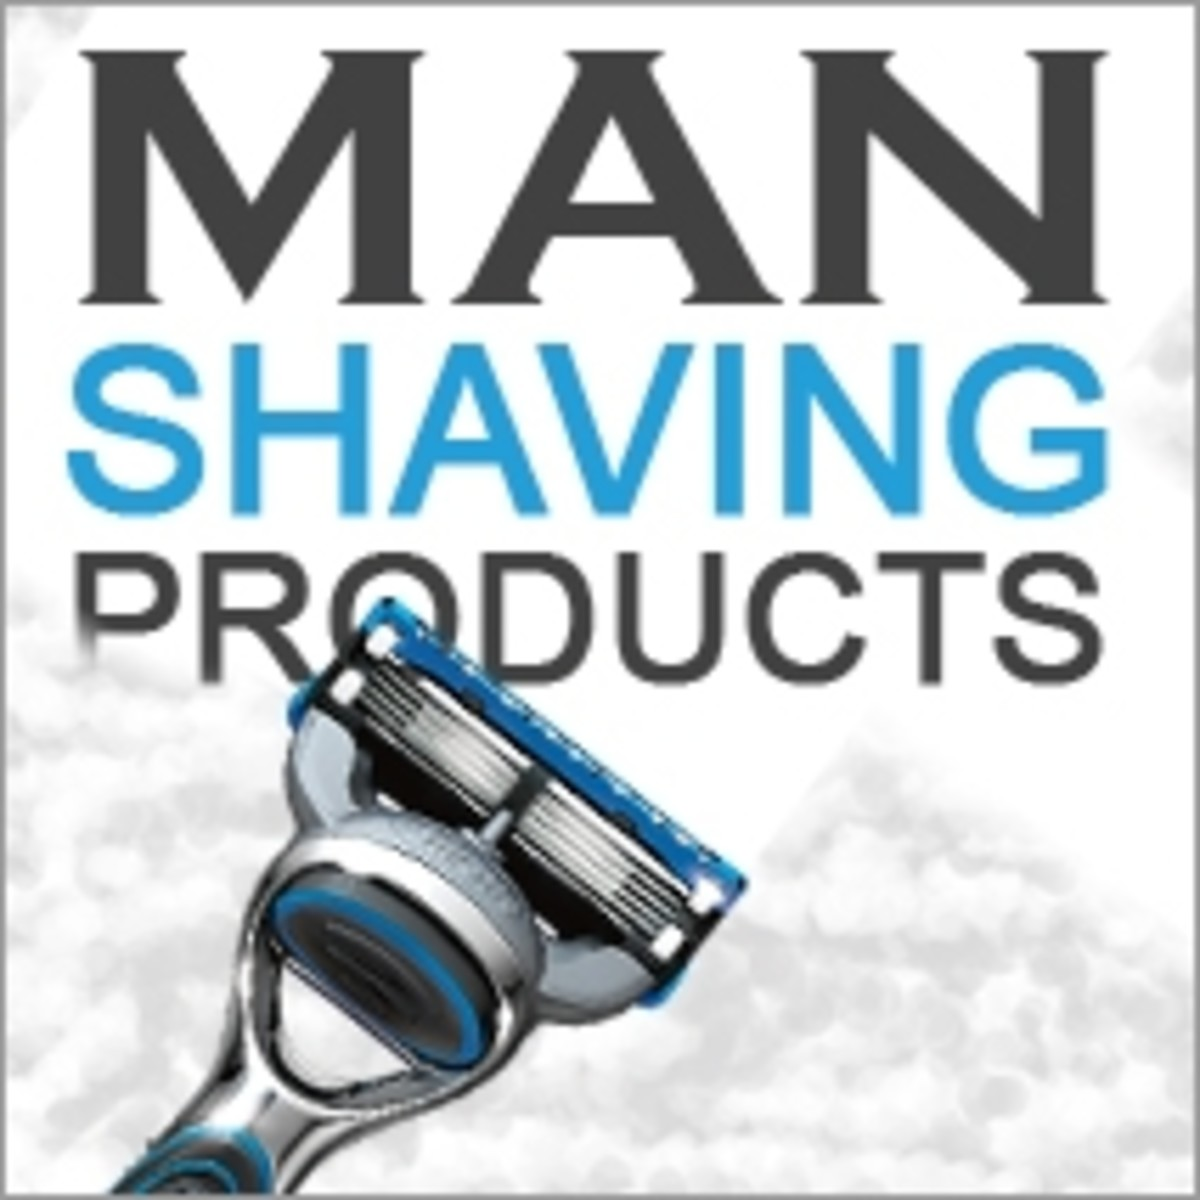 Best Shaving Cream for Men 2016